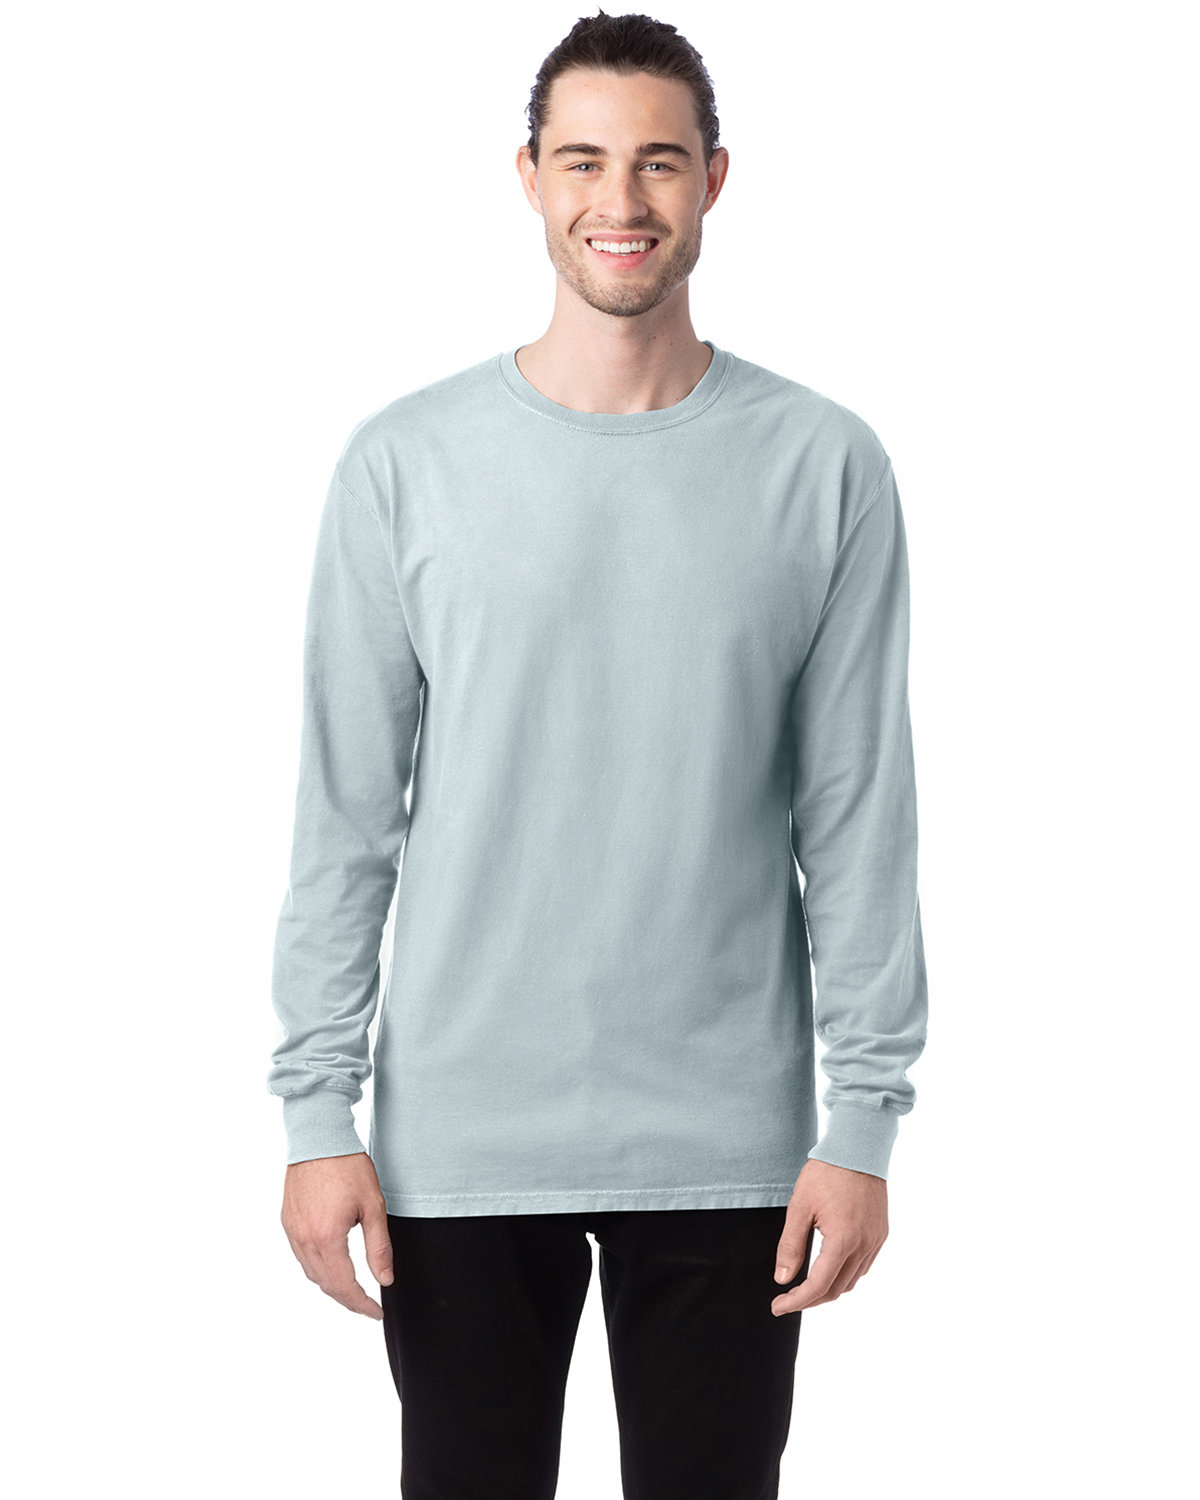 ComfortWash by Hanes Unisex 5.5 oz., 100% Ringspun Cotton Garment-Dyed Long-Sleeve T-Shirt SOOTHING BLUE